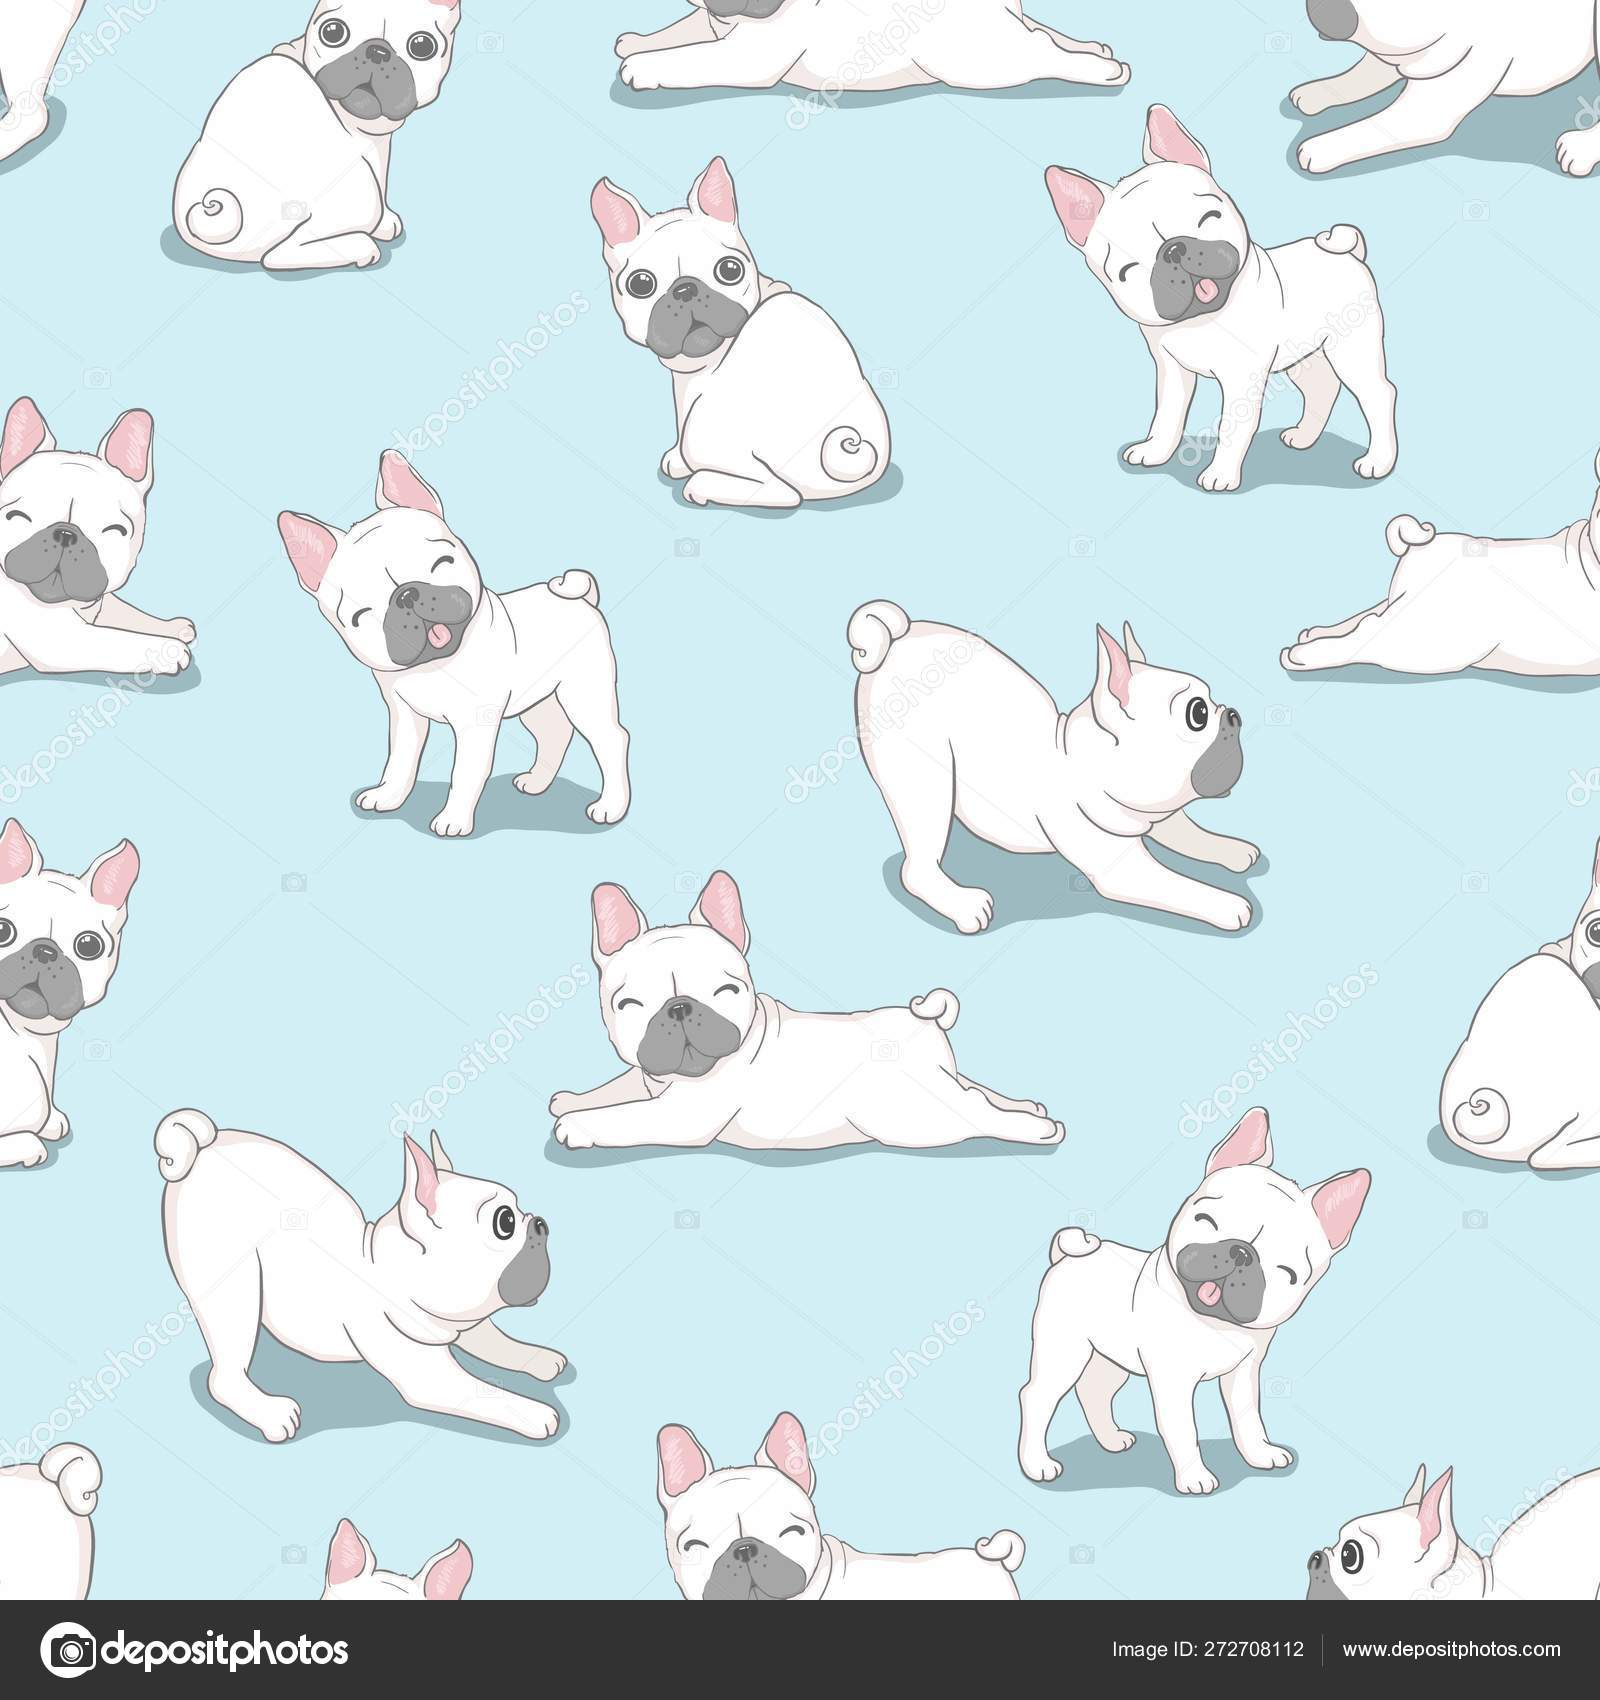 Dog Seamless Pattern French Bulldog Paw Vector Repeat Background Tile Cartoon Wallpaper Isolated Black Stock Vector C 89534886399 Mail Ru 272708112